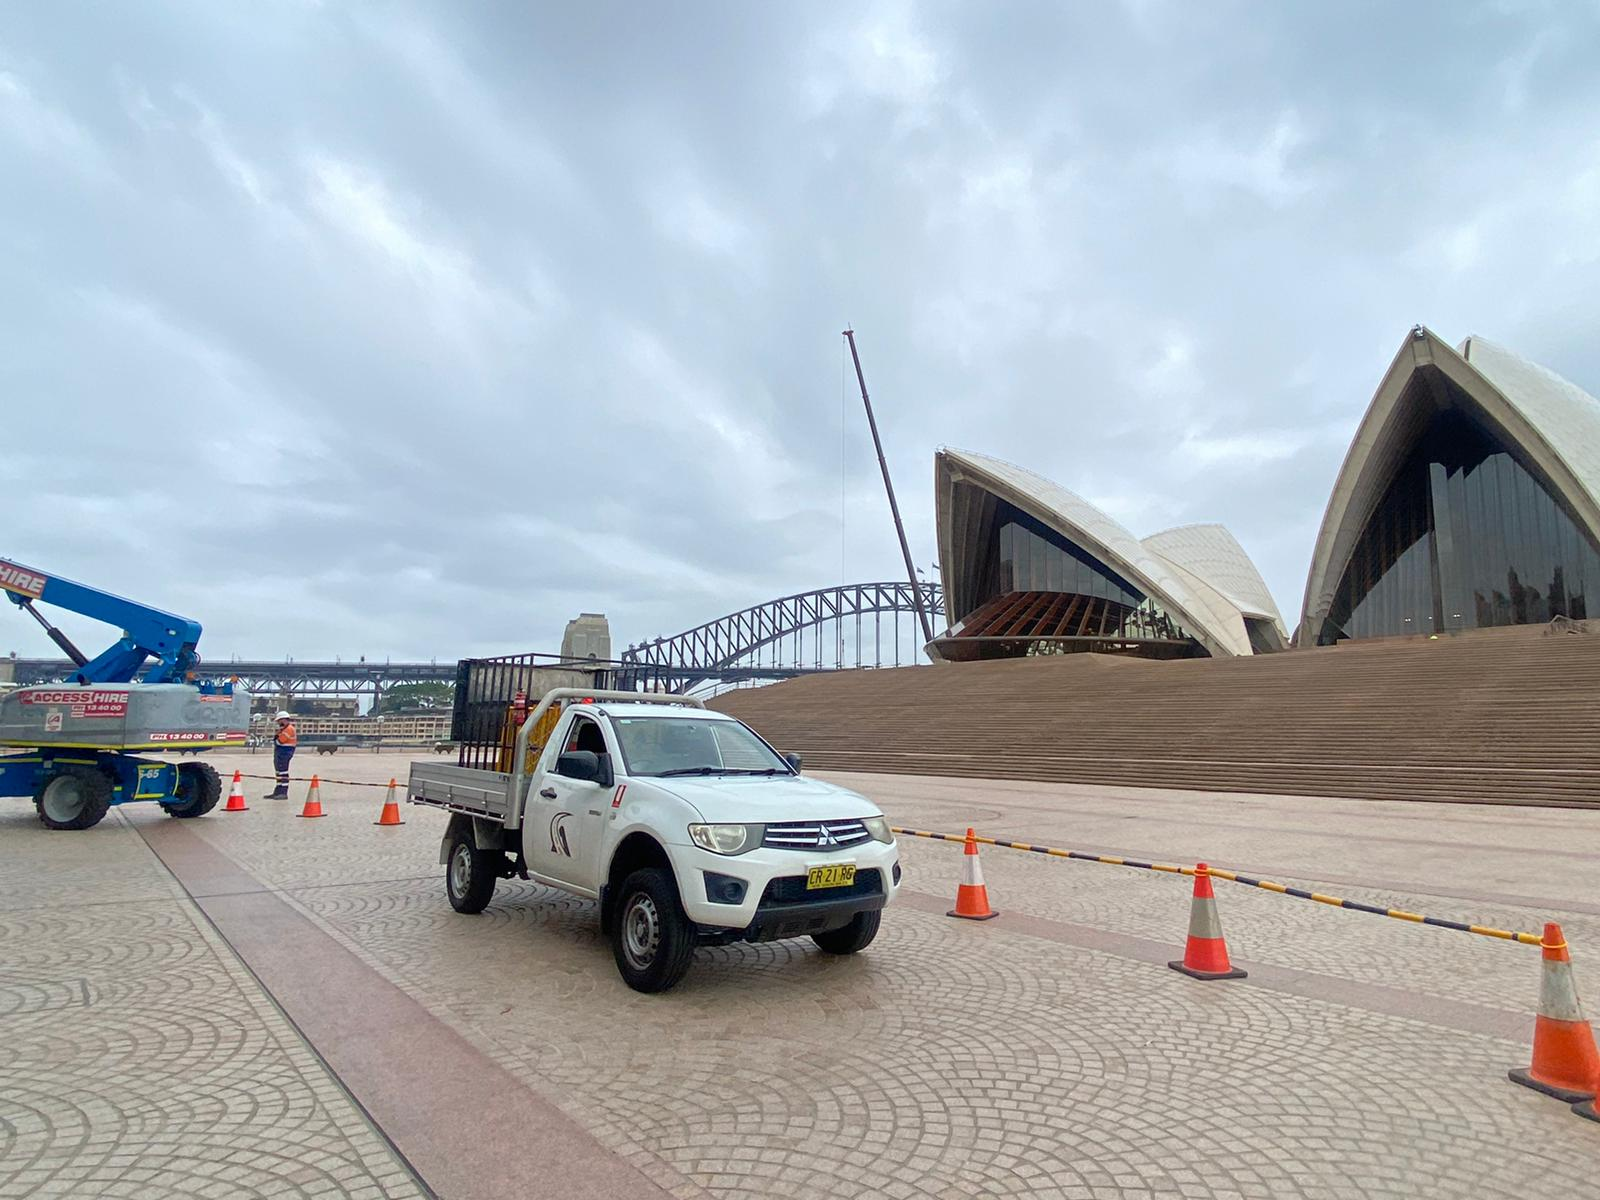 RMS permits traffic control at opera house